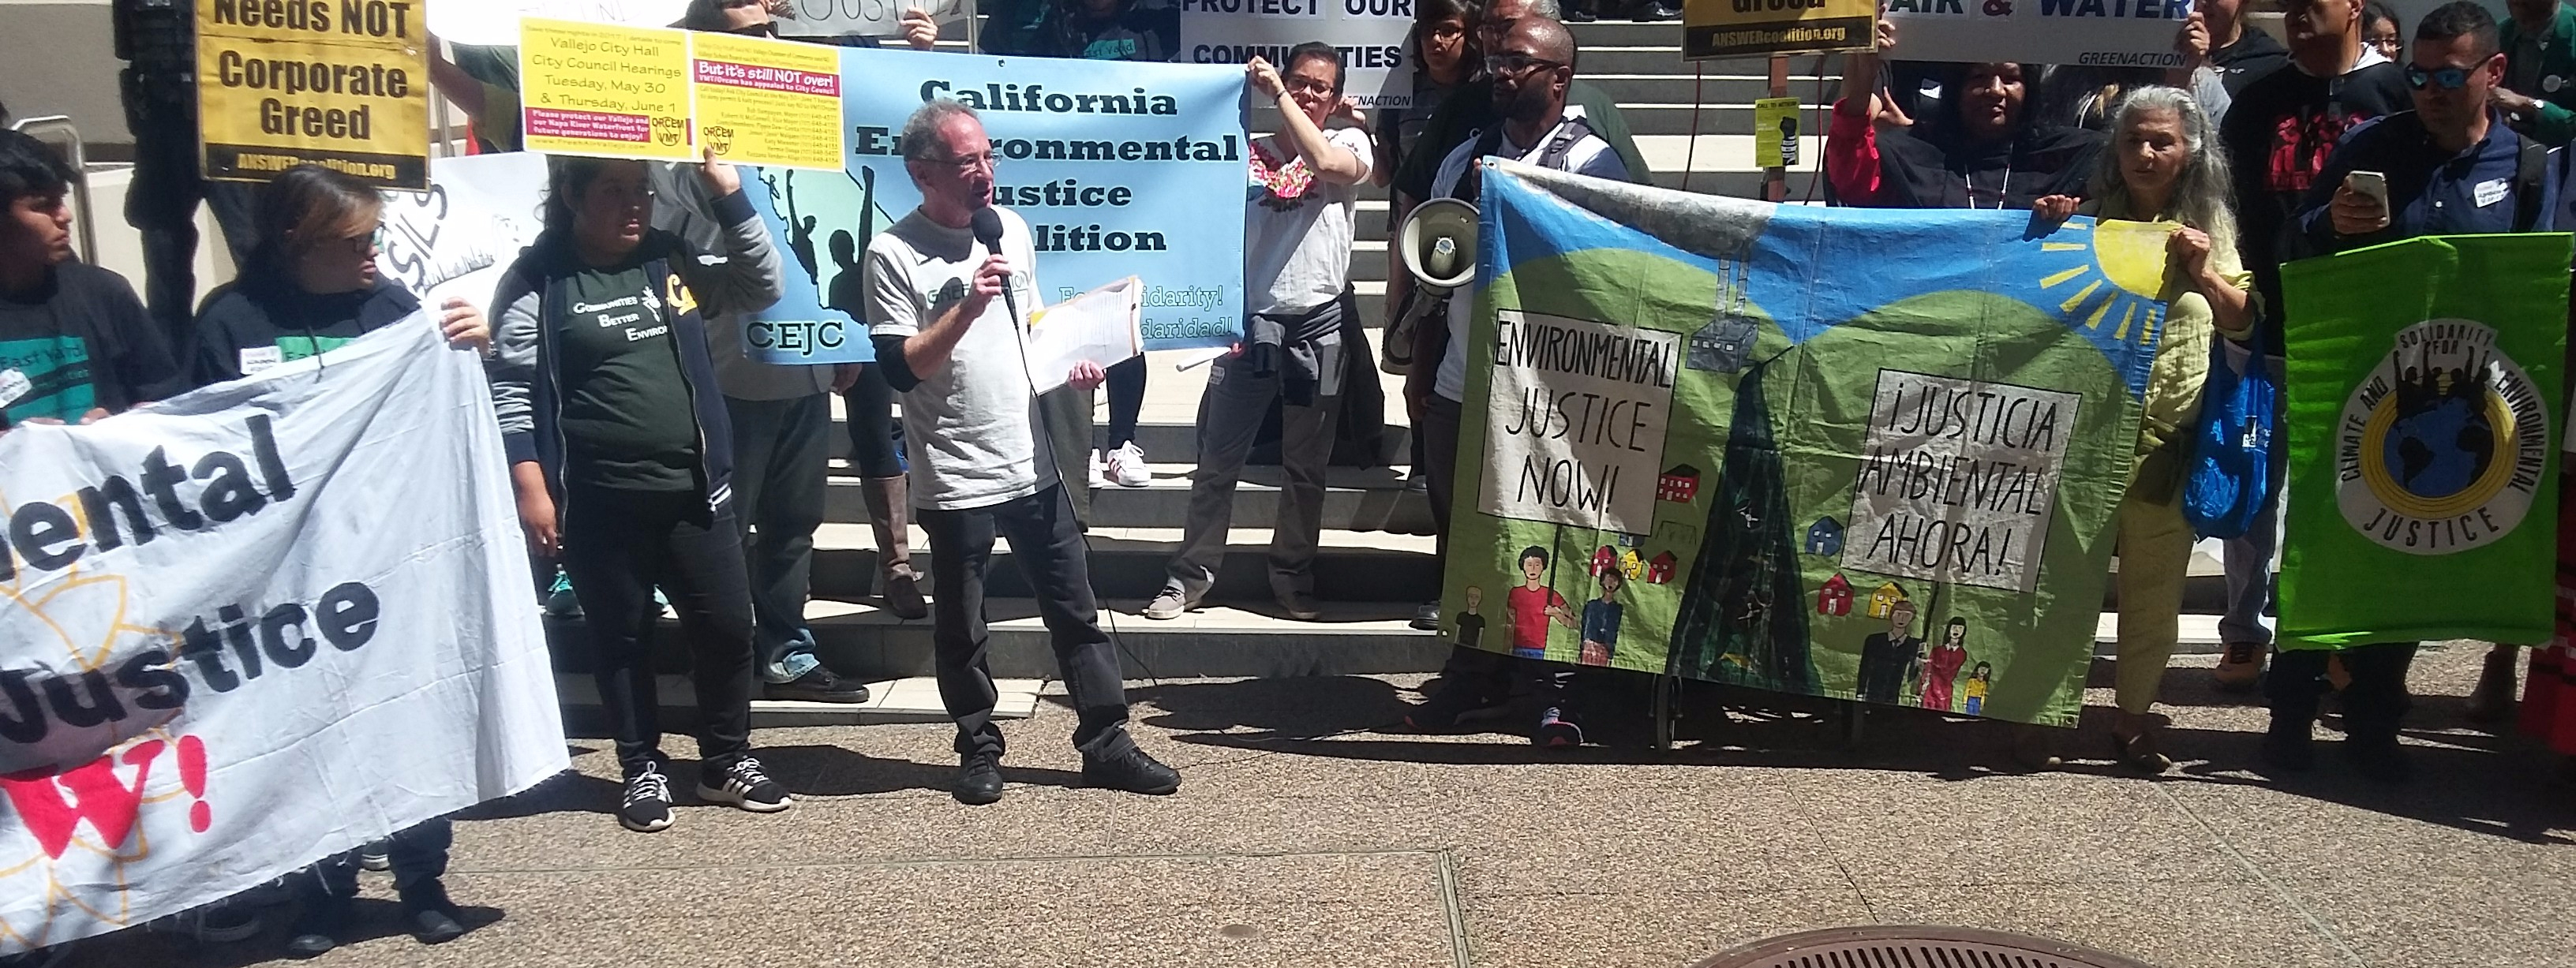 Bradley-Angel-of-Greenaction-speaks-at-April-21-2017-Earth-Day-Action